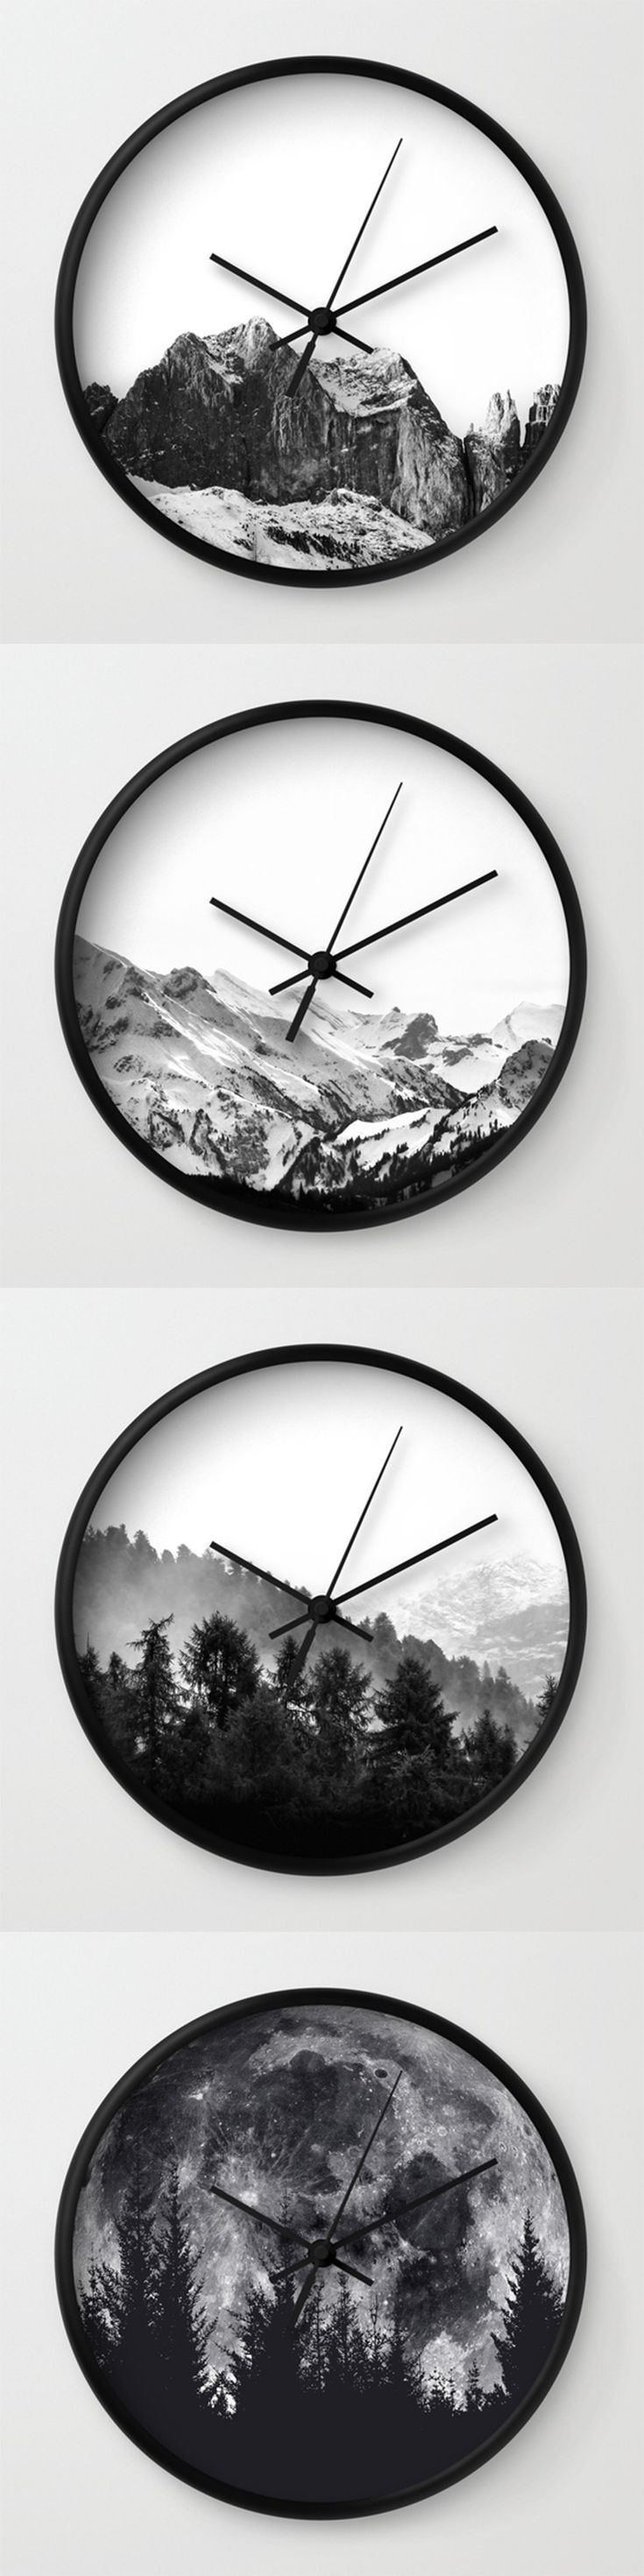 minimalist black and white wall clocks by neptune essentials on society6 home decor wall decor